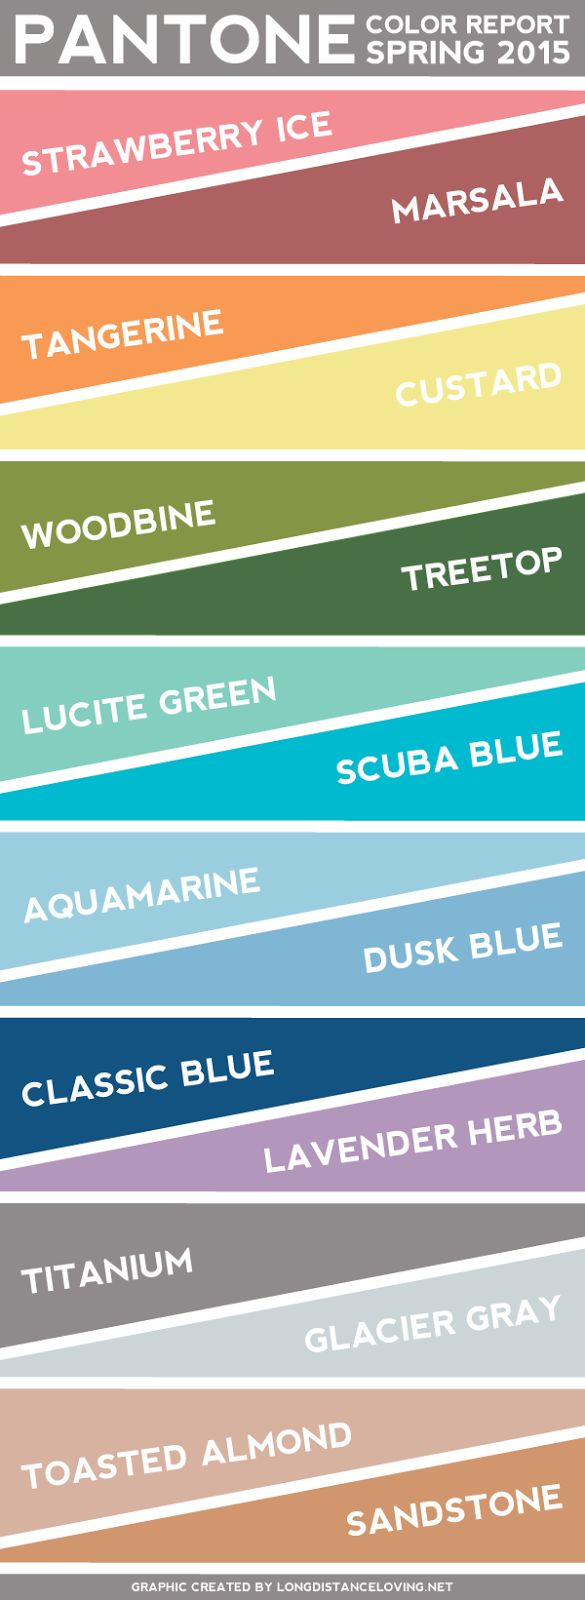 pantone color report: spring 2015 // graphic by long distance loving. These are very much my colors, maybe a tiny bit brighter than normal. I love when fashion matches my tastes.